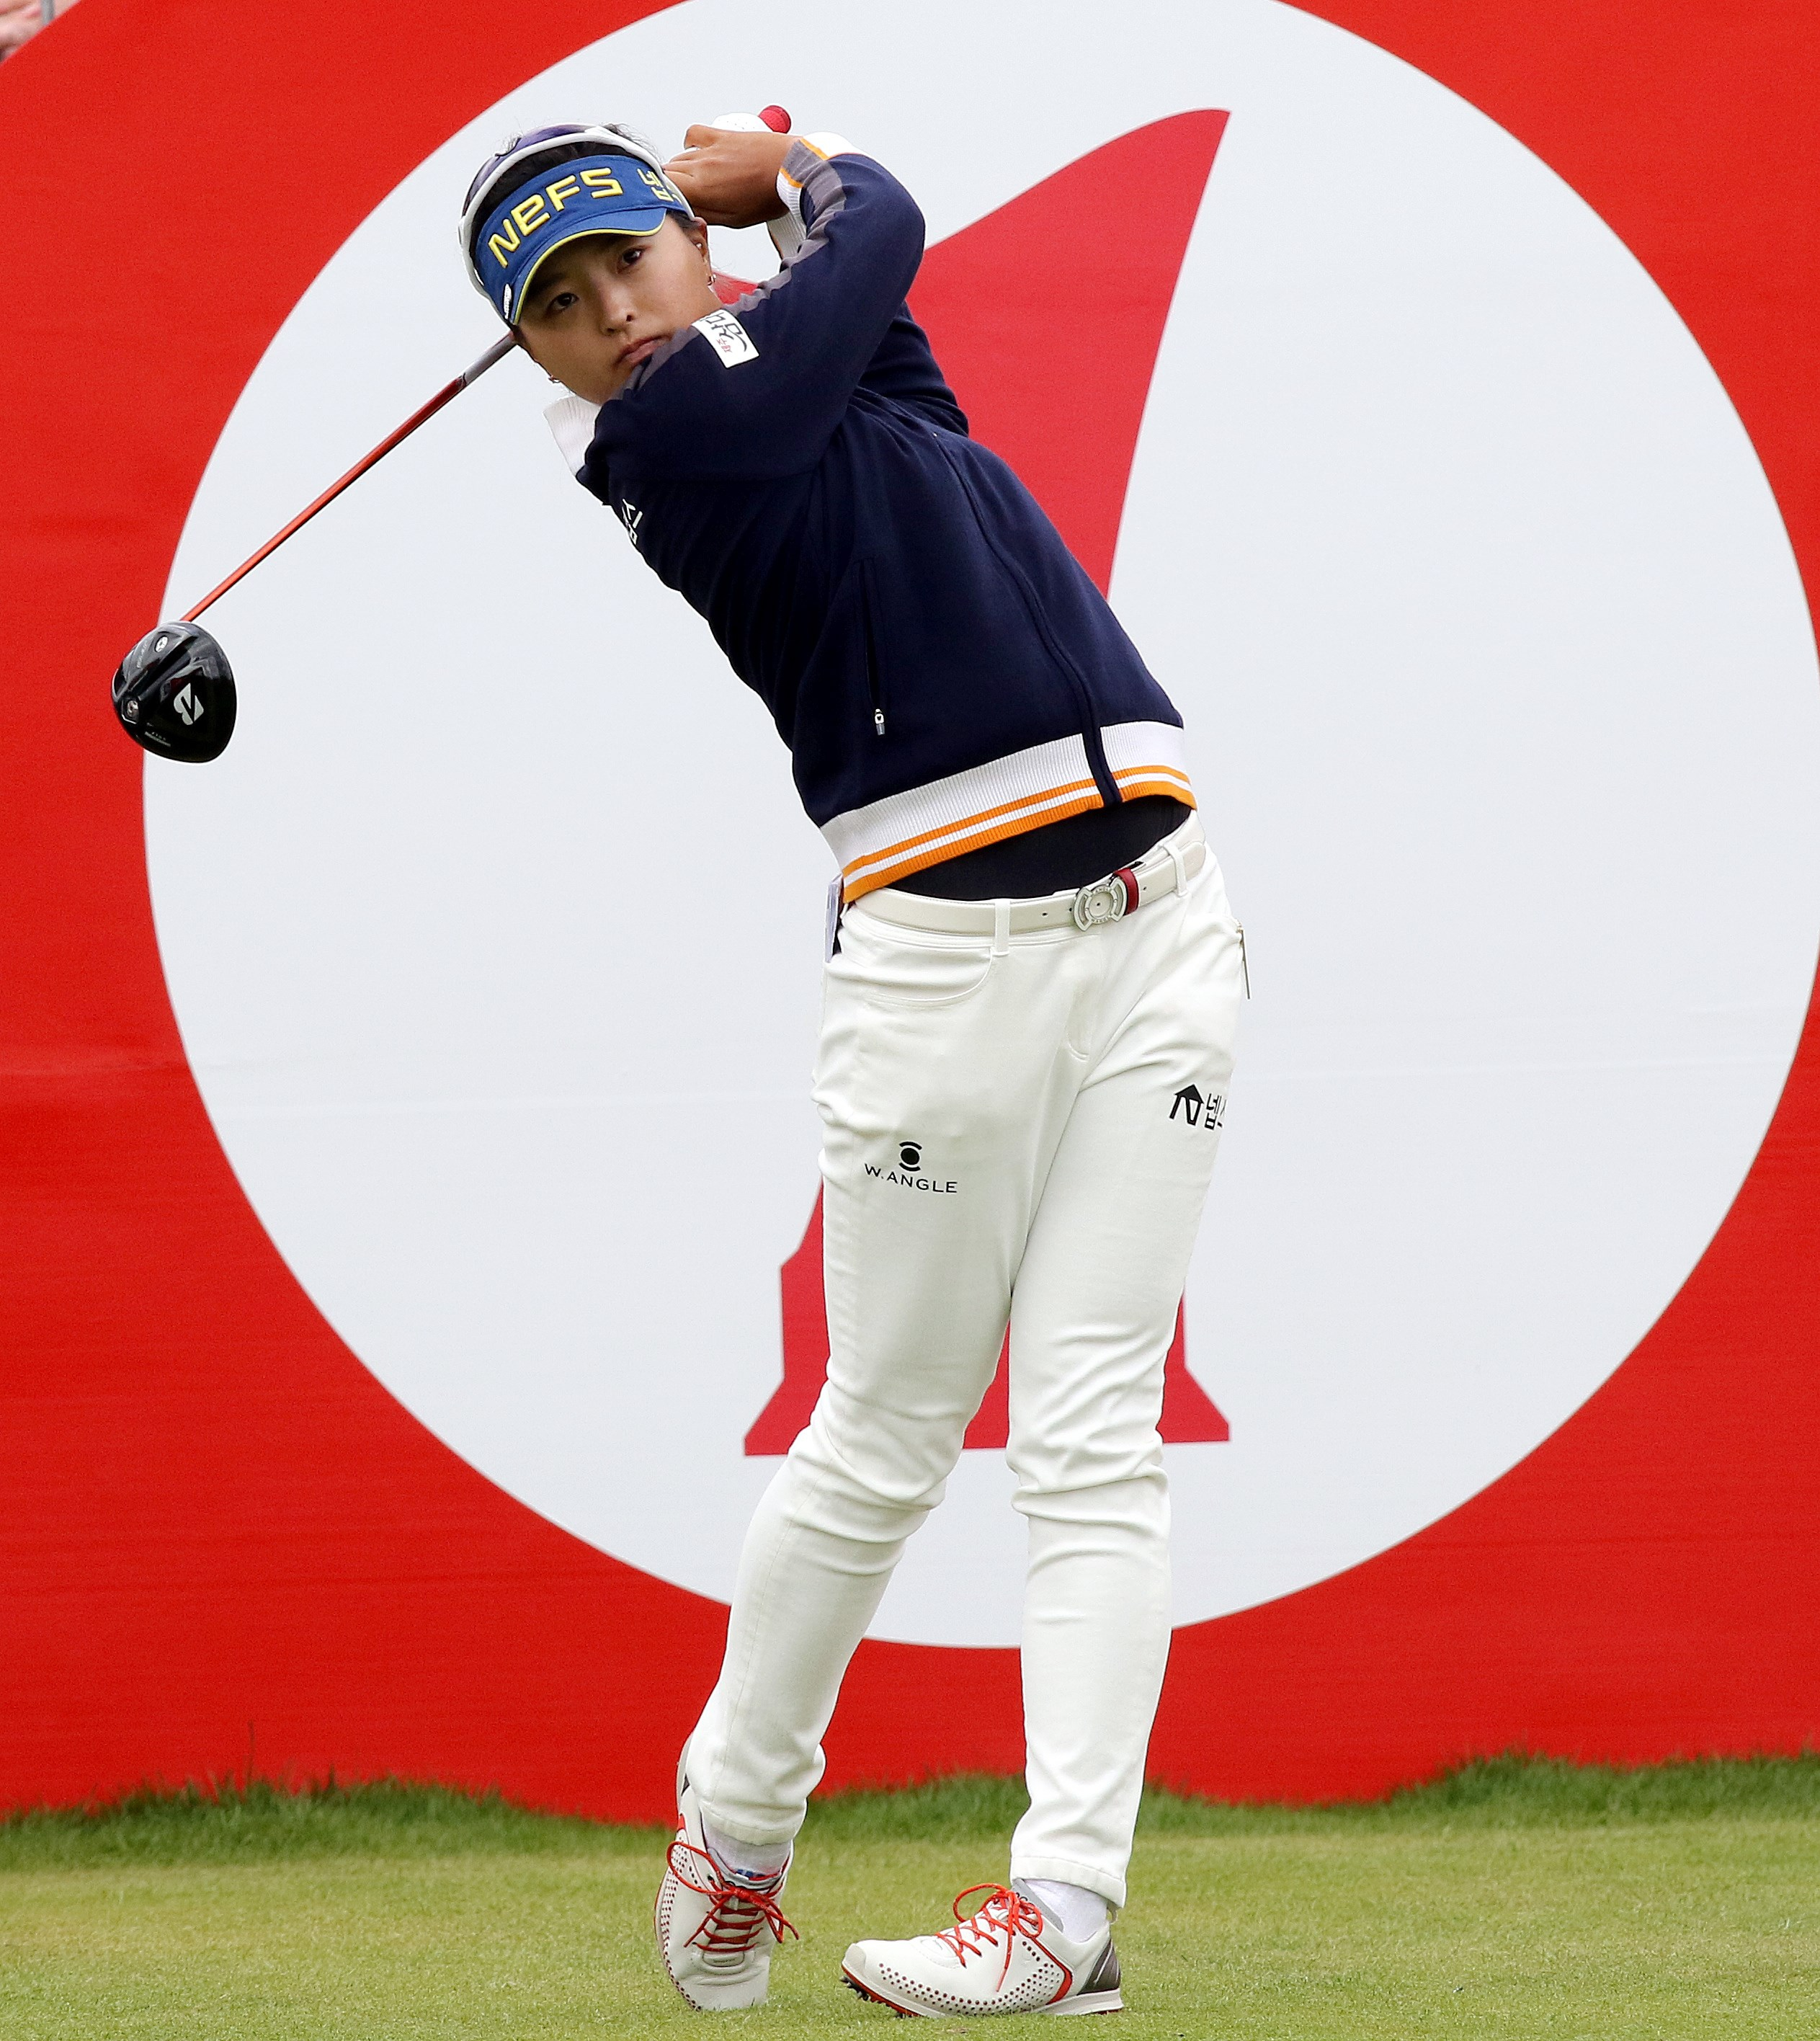 Jin-Young Ko tees off on the first hole during the third round of the Women's British Open.